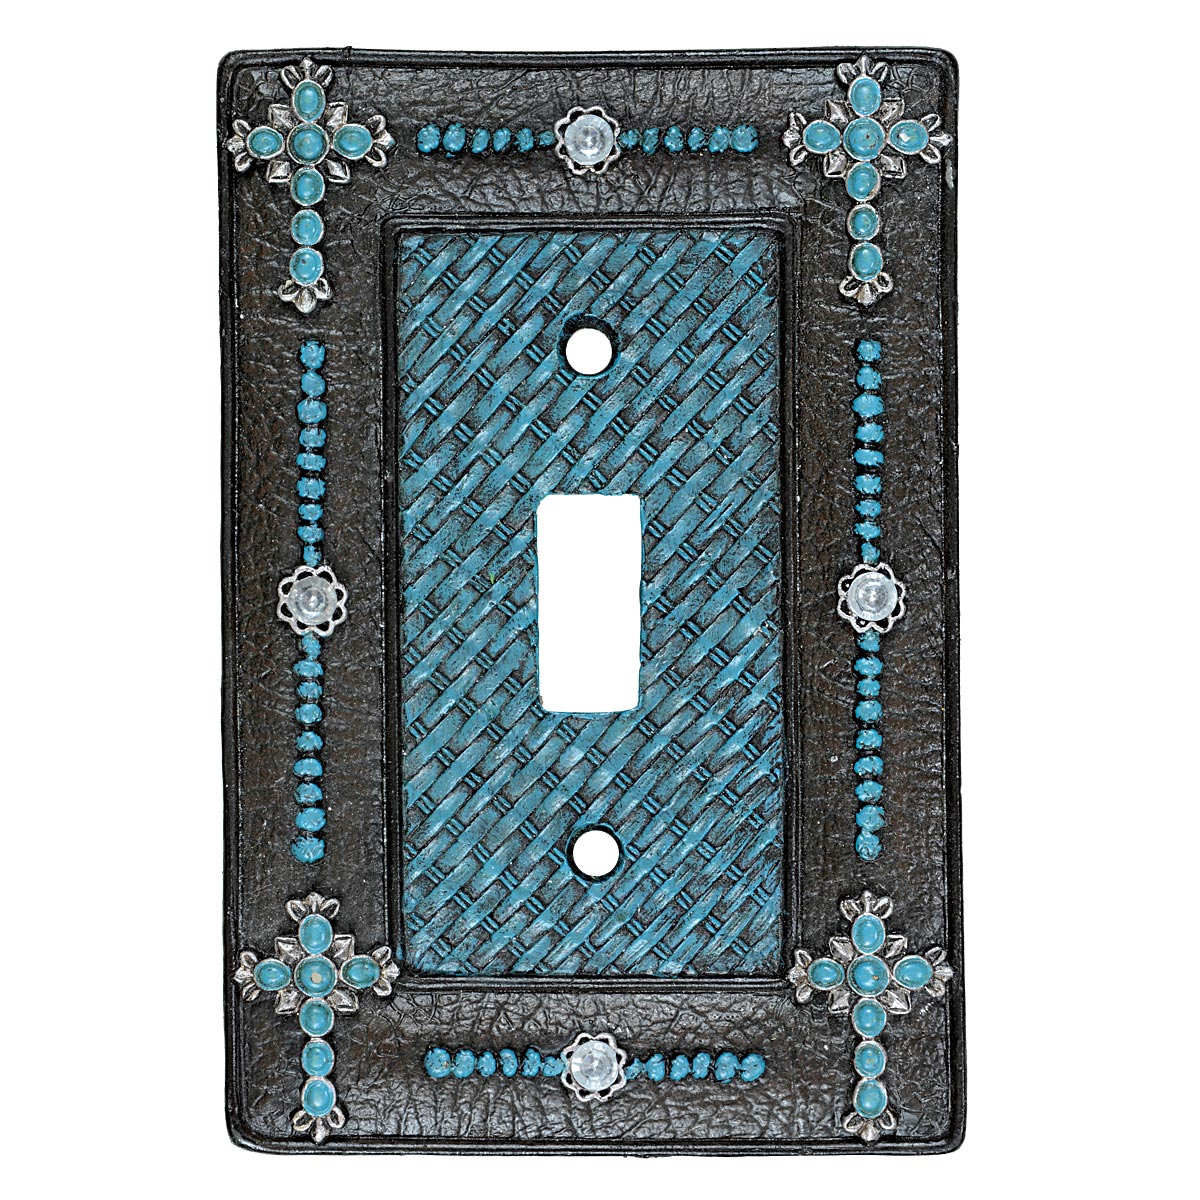 Turquoise Cross & Weave Single Switch Plate - CLEARANCE